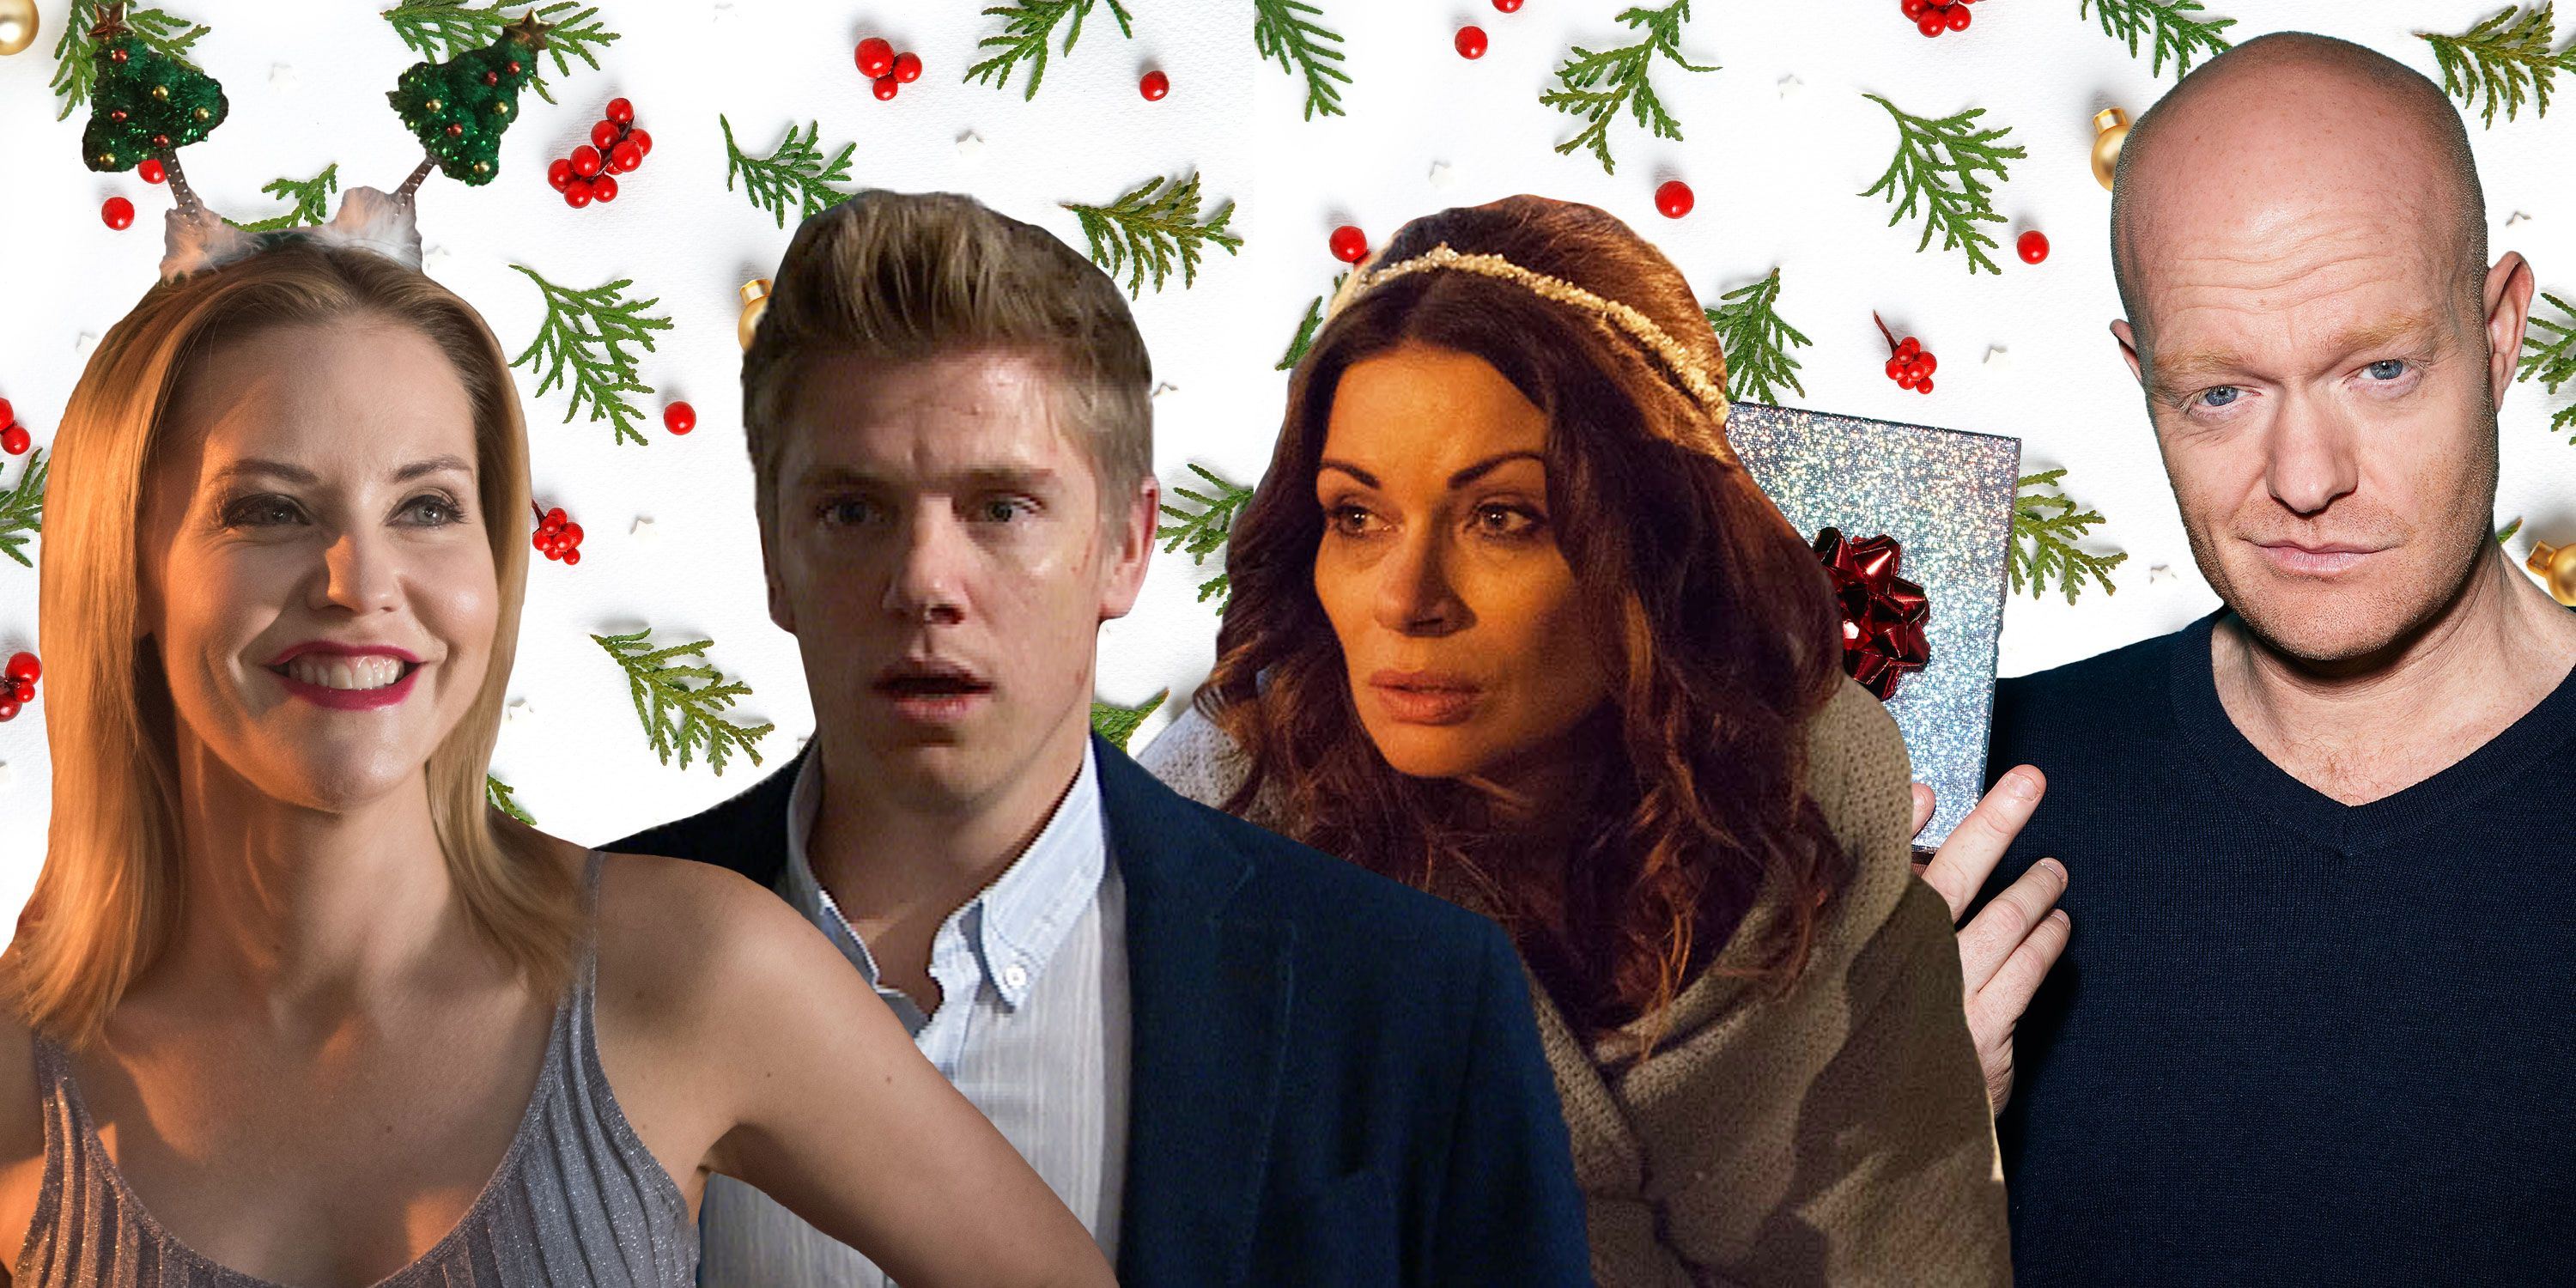 PHOTOSHOP, Soaps Christmas Max Branning (EastEnders), Cindy Cunningham (Hollyoaks), Carla Connor (Corrie) and Robert Sugden (Emmerdale)